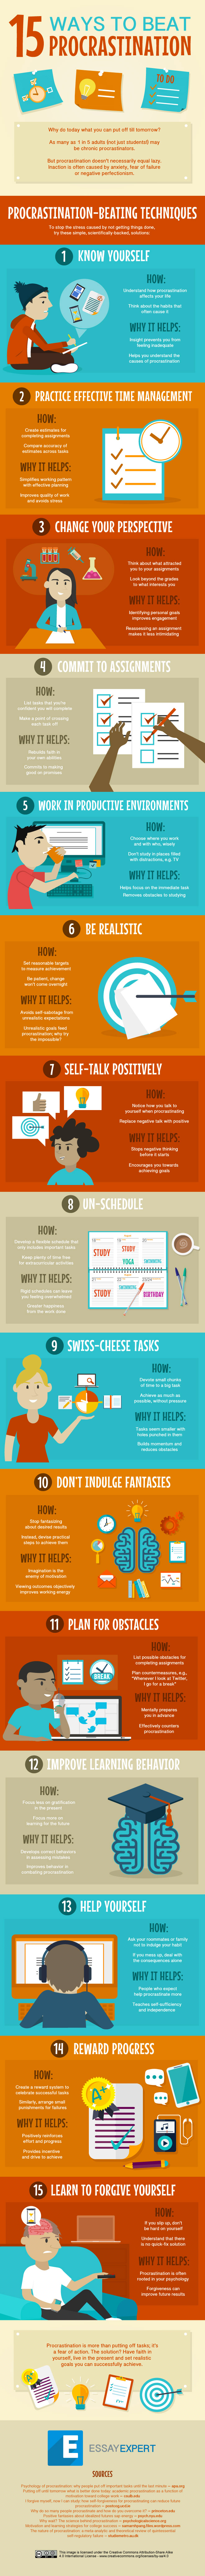 15 tips to overcome procrastination infographic